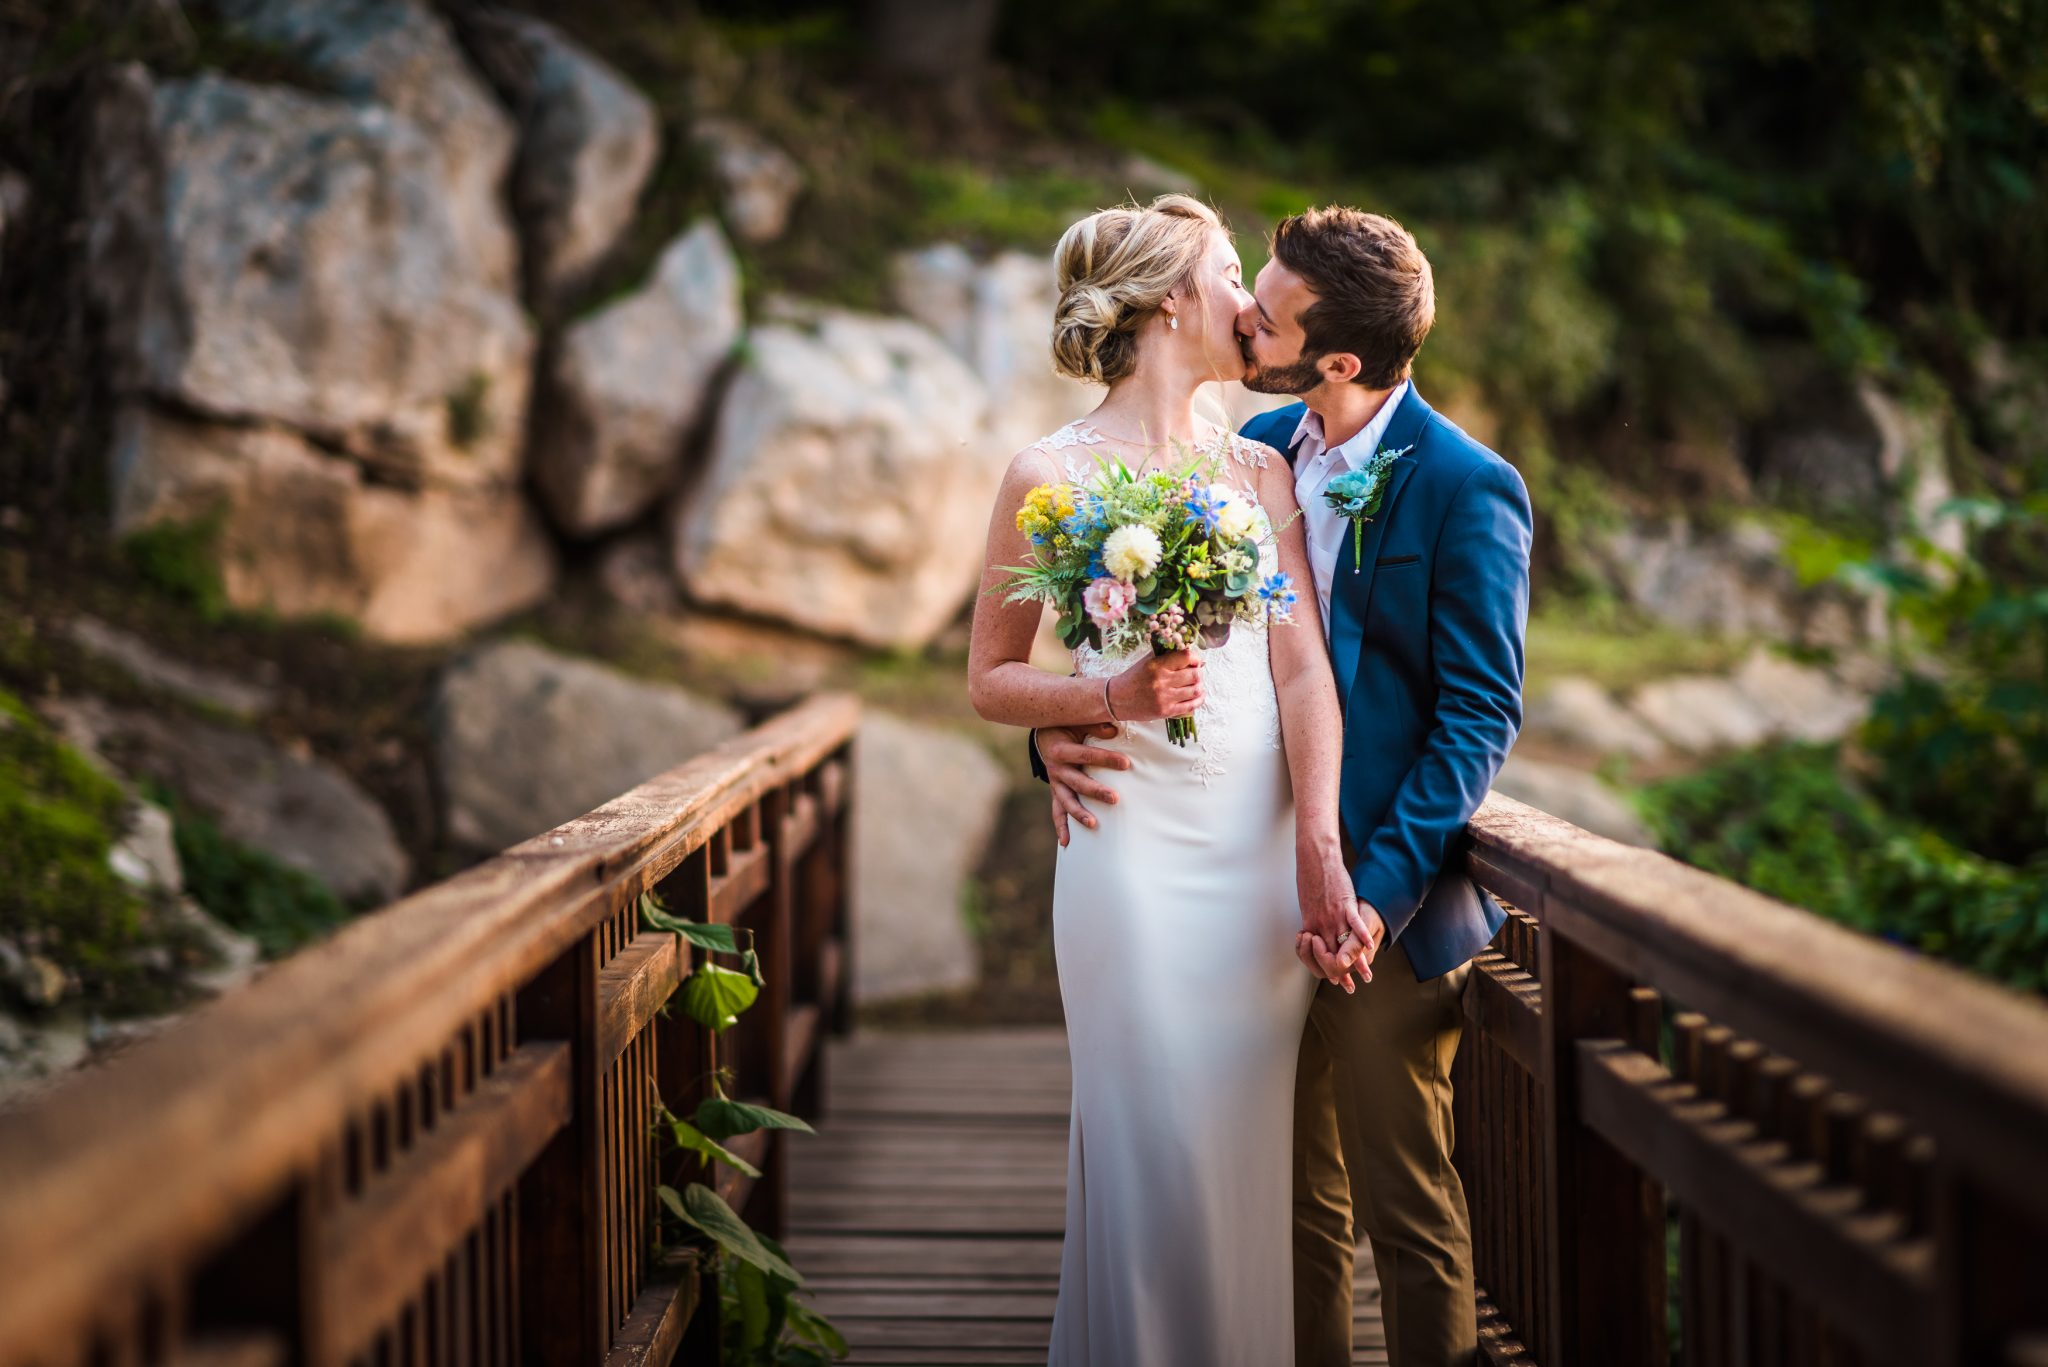 After a while I realised how lucky I am to be their paphos wedding photographer,.